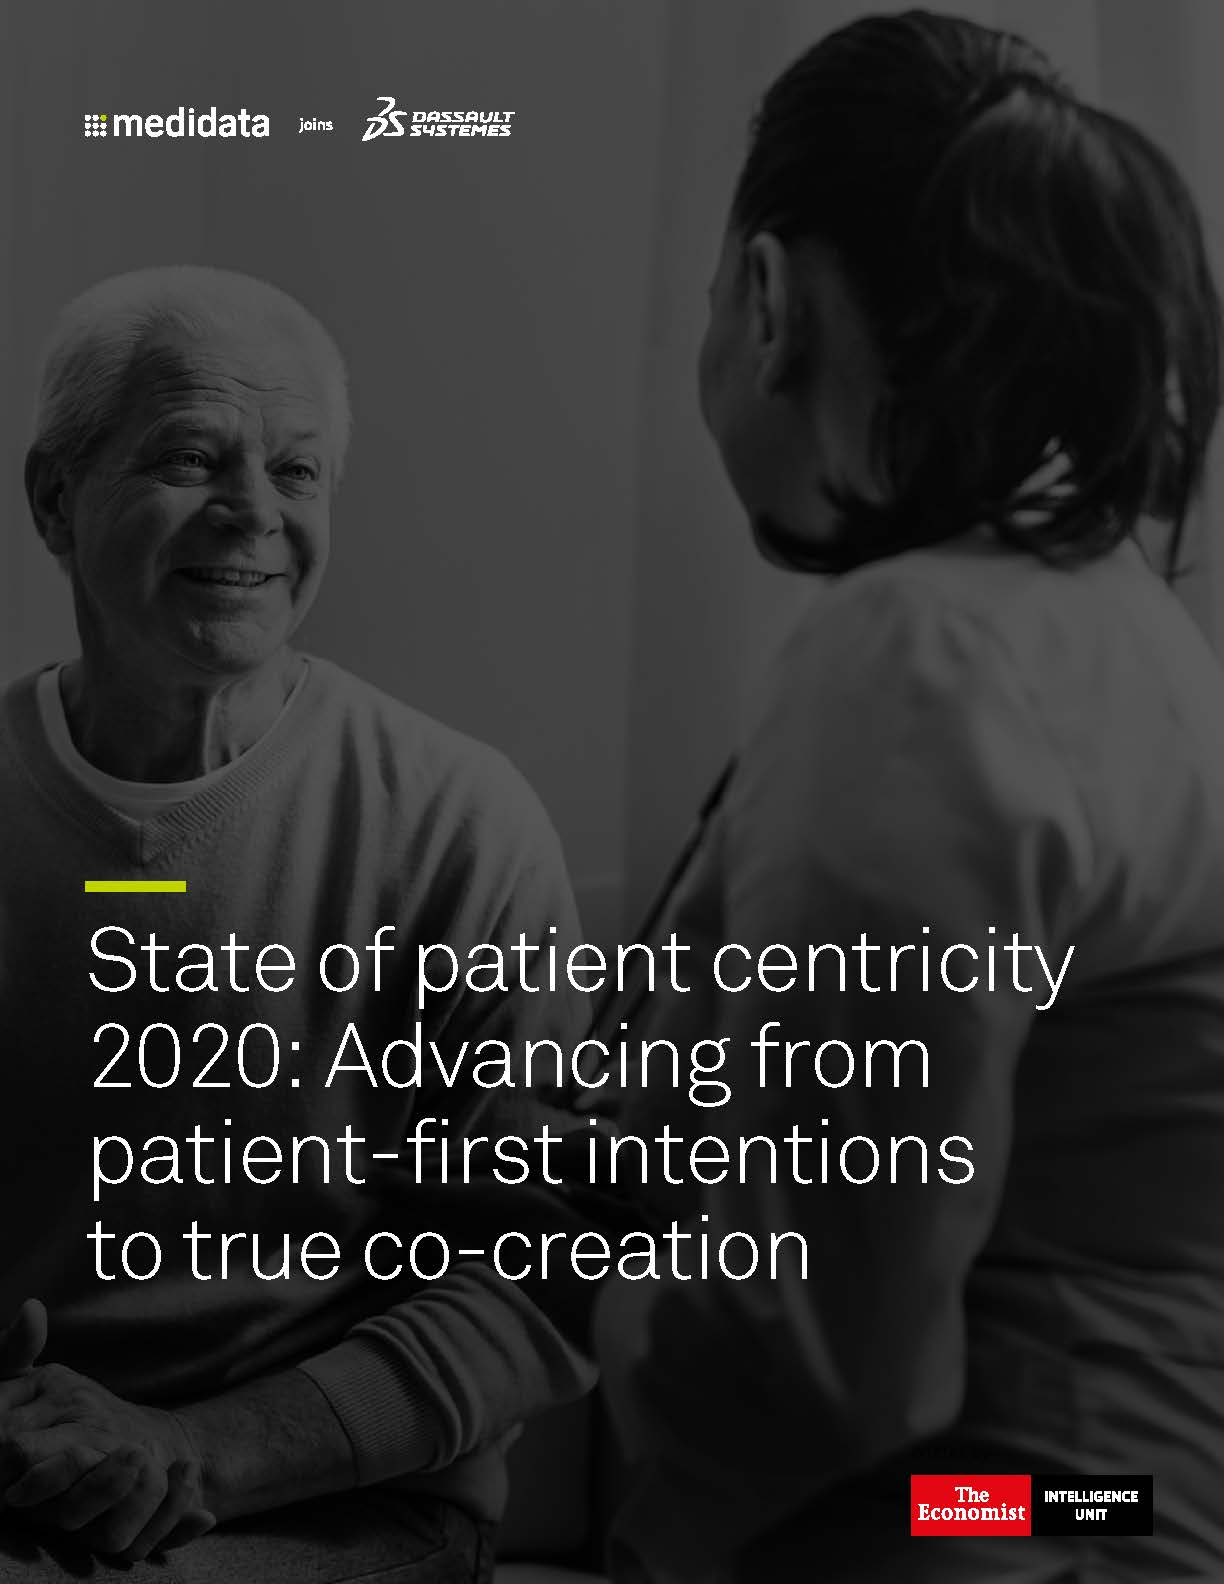 State of Patient Centricity 2020: Advancing From Patient-First Intentions to True Co-Creation